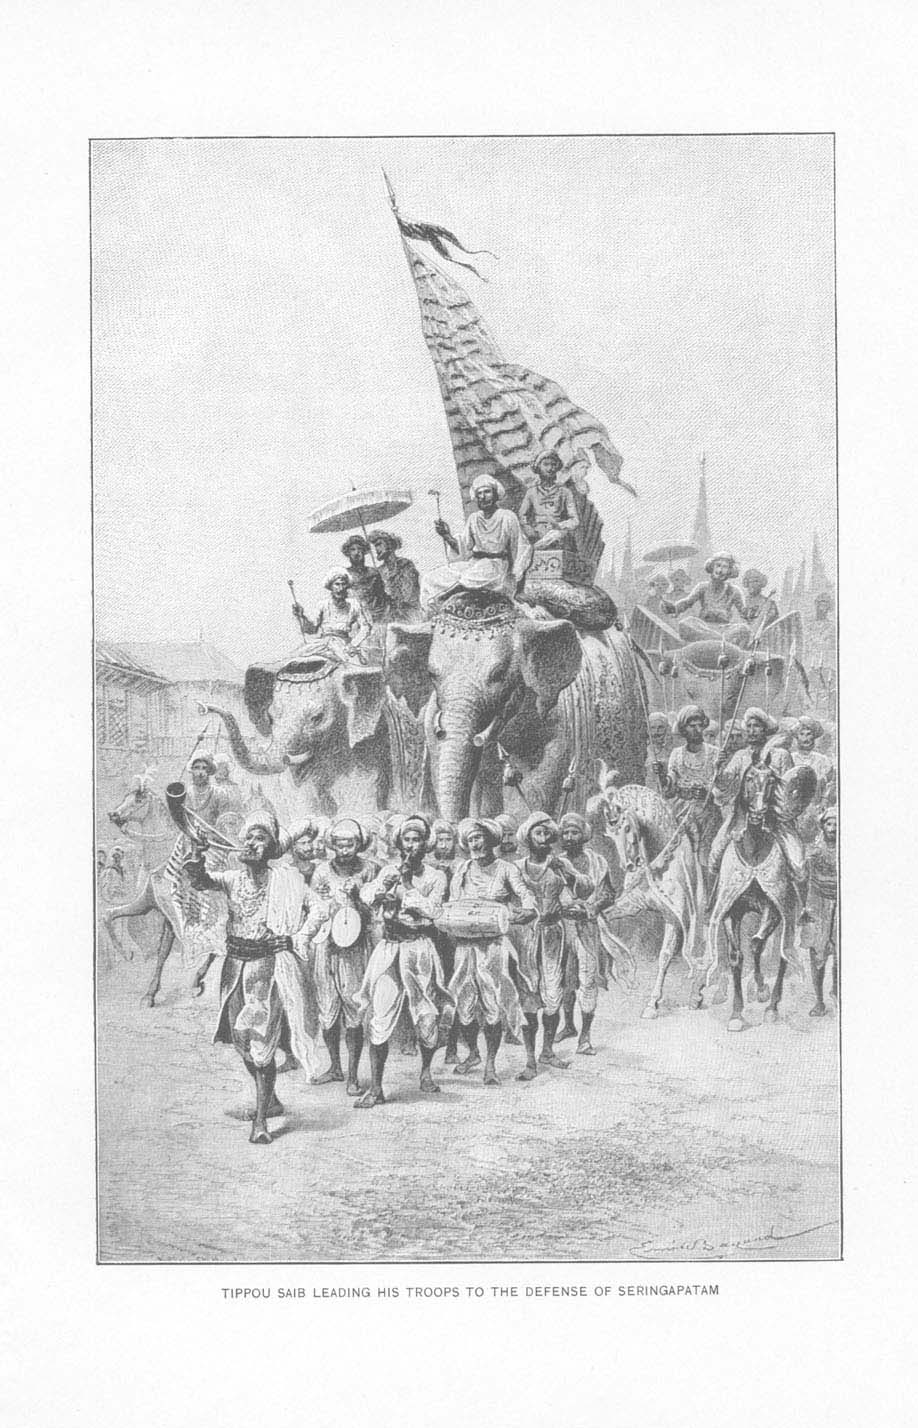 http://www.columbia.edu/itc/mealac/pritchett/00routesdata/1700_1799/tipusultan/lastbattle/engraving1902.jpg